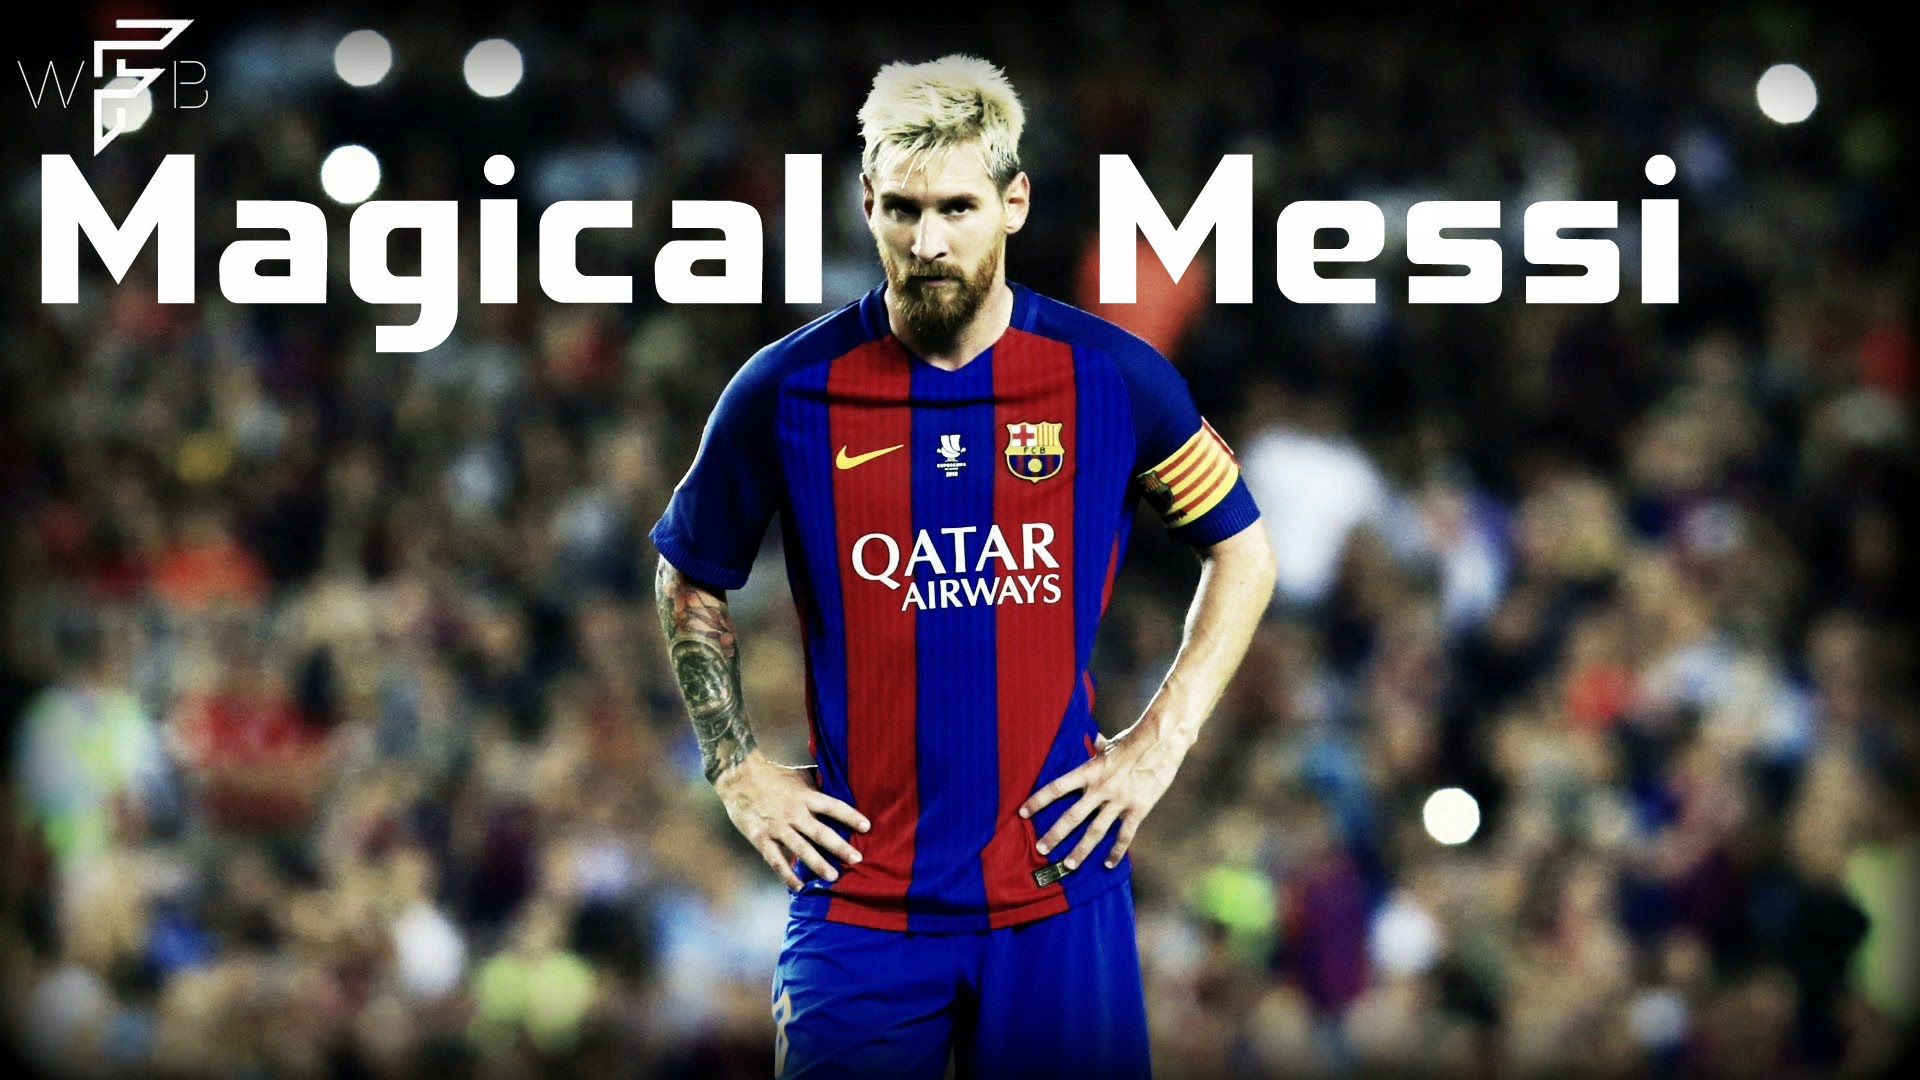 Messi 2020 wallpapers 2